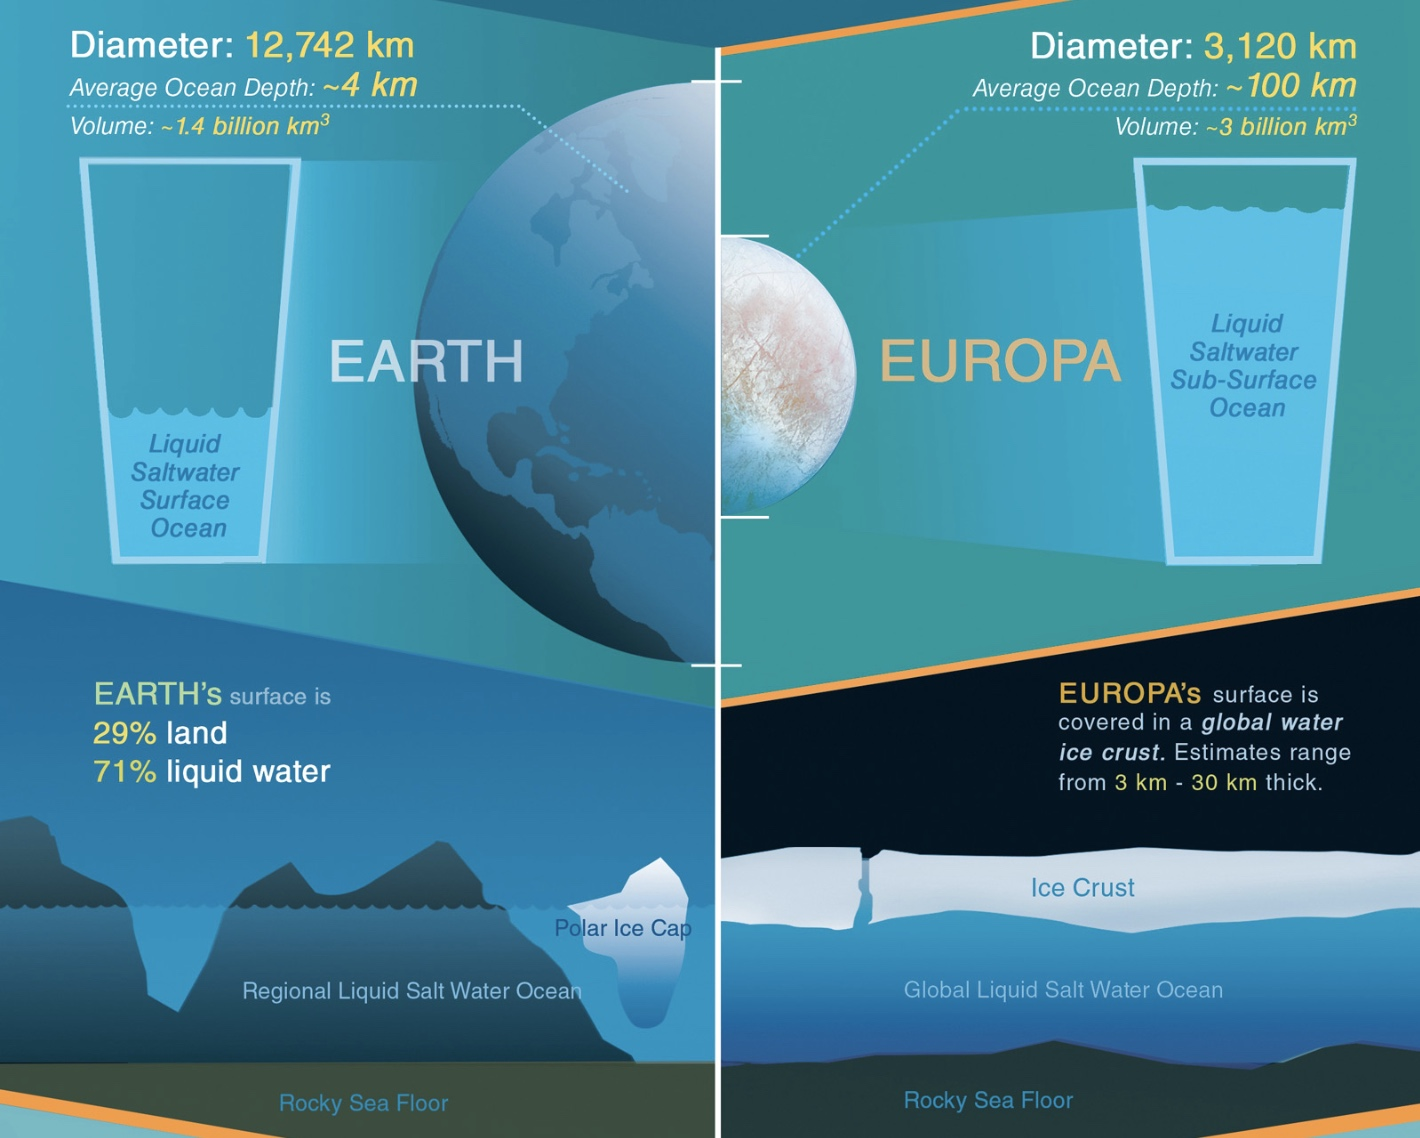 infographic showing oceans on Earth and Europa